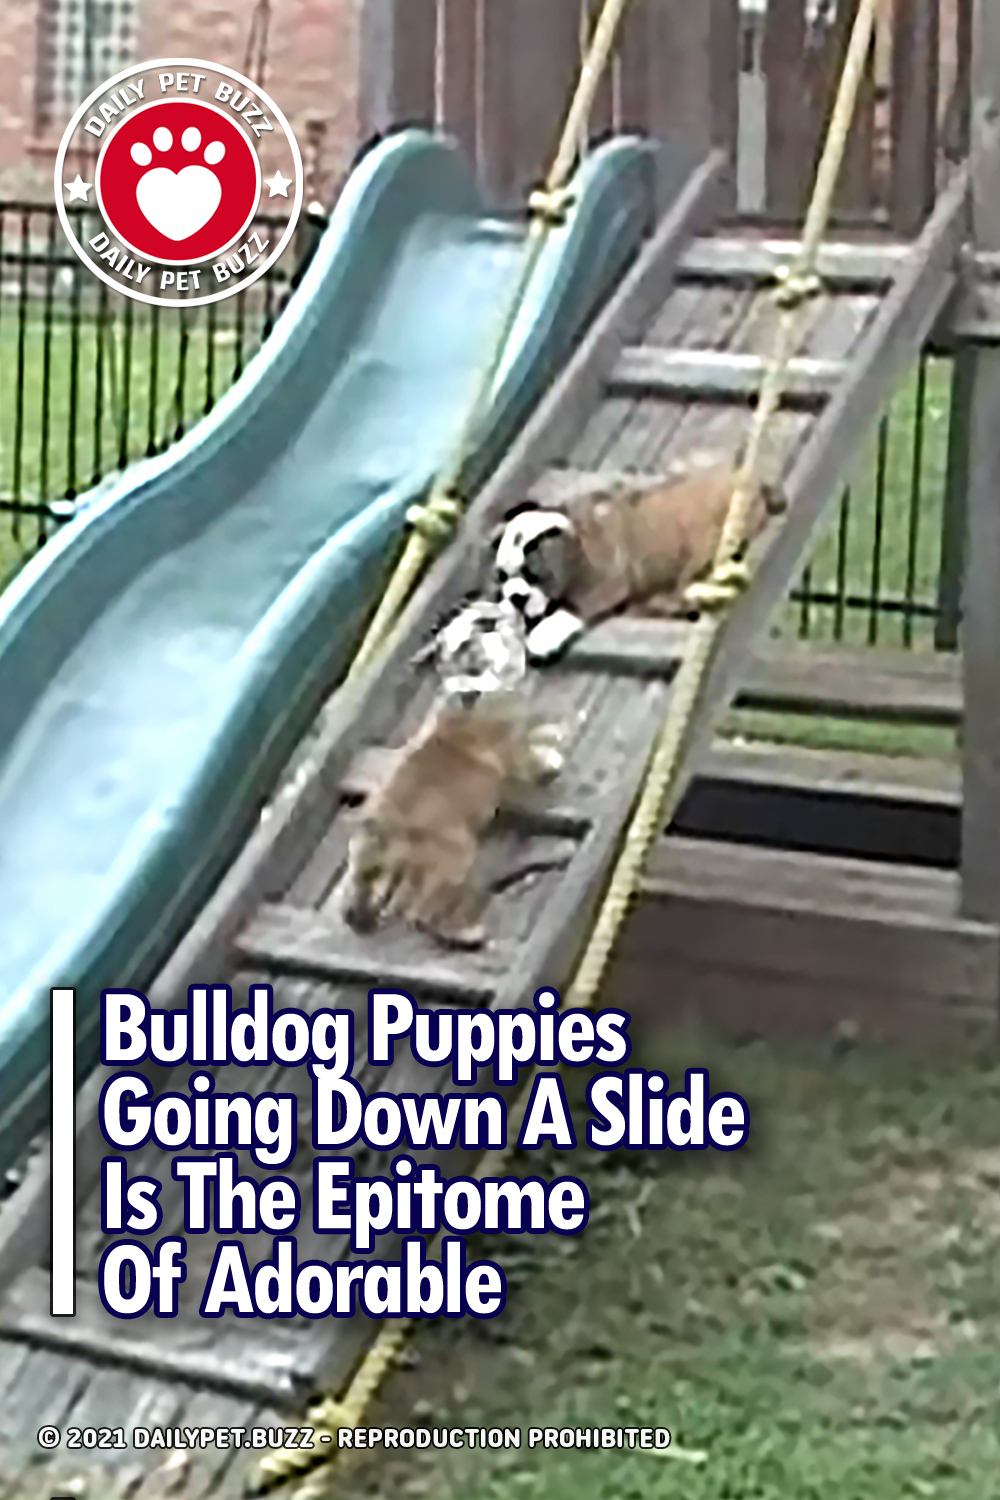 Bulldog Puppies Going Down A Slide Is The Epitome Of Adorable